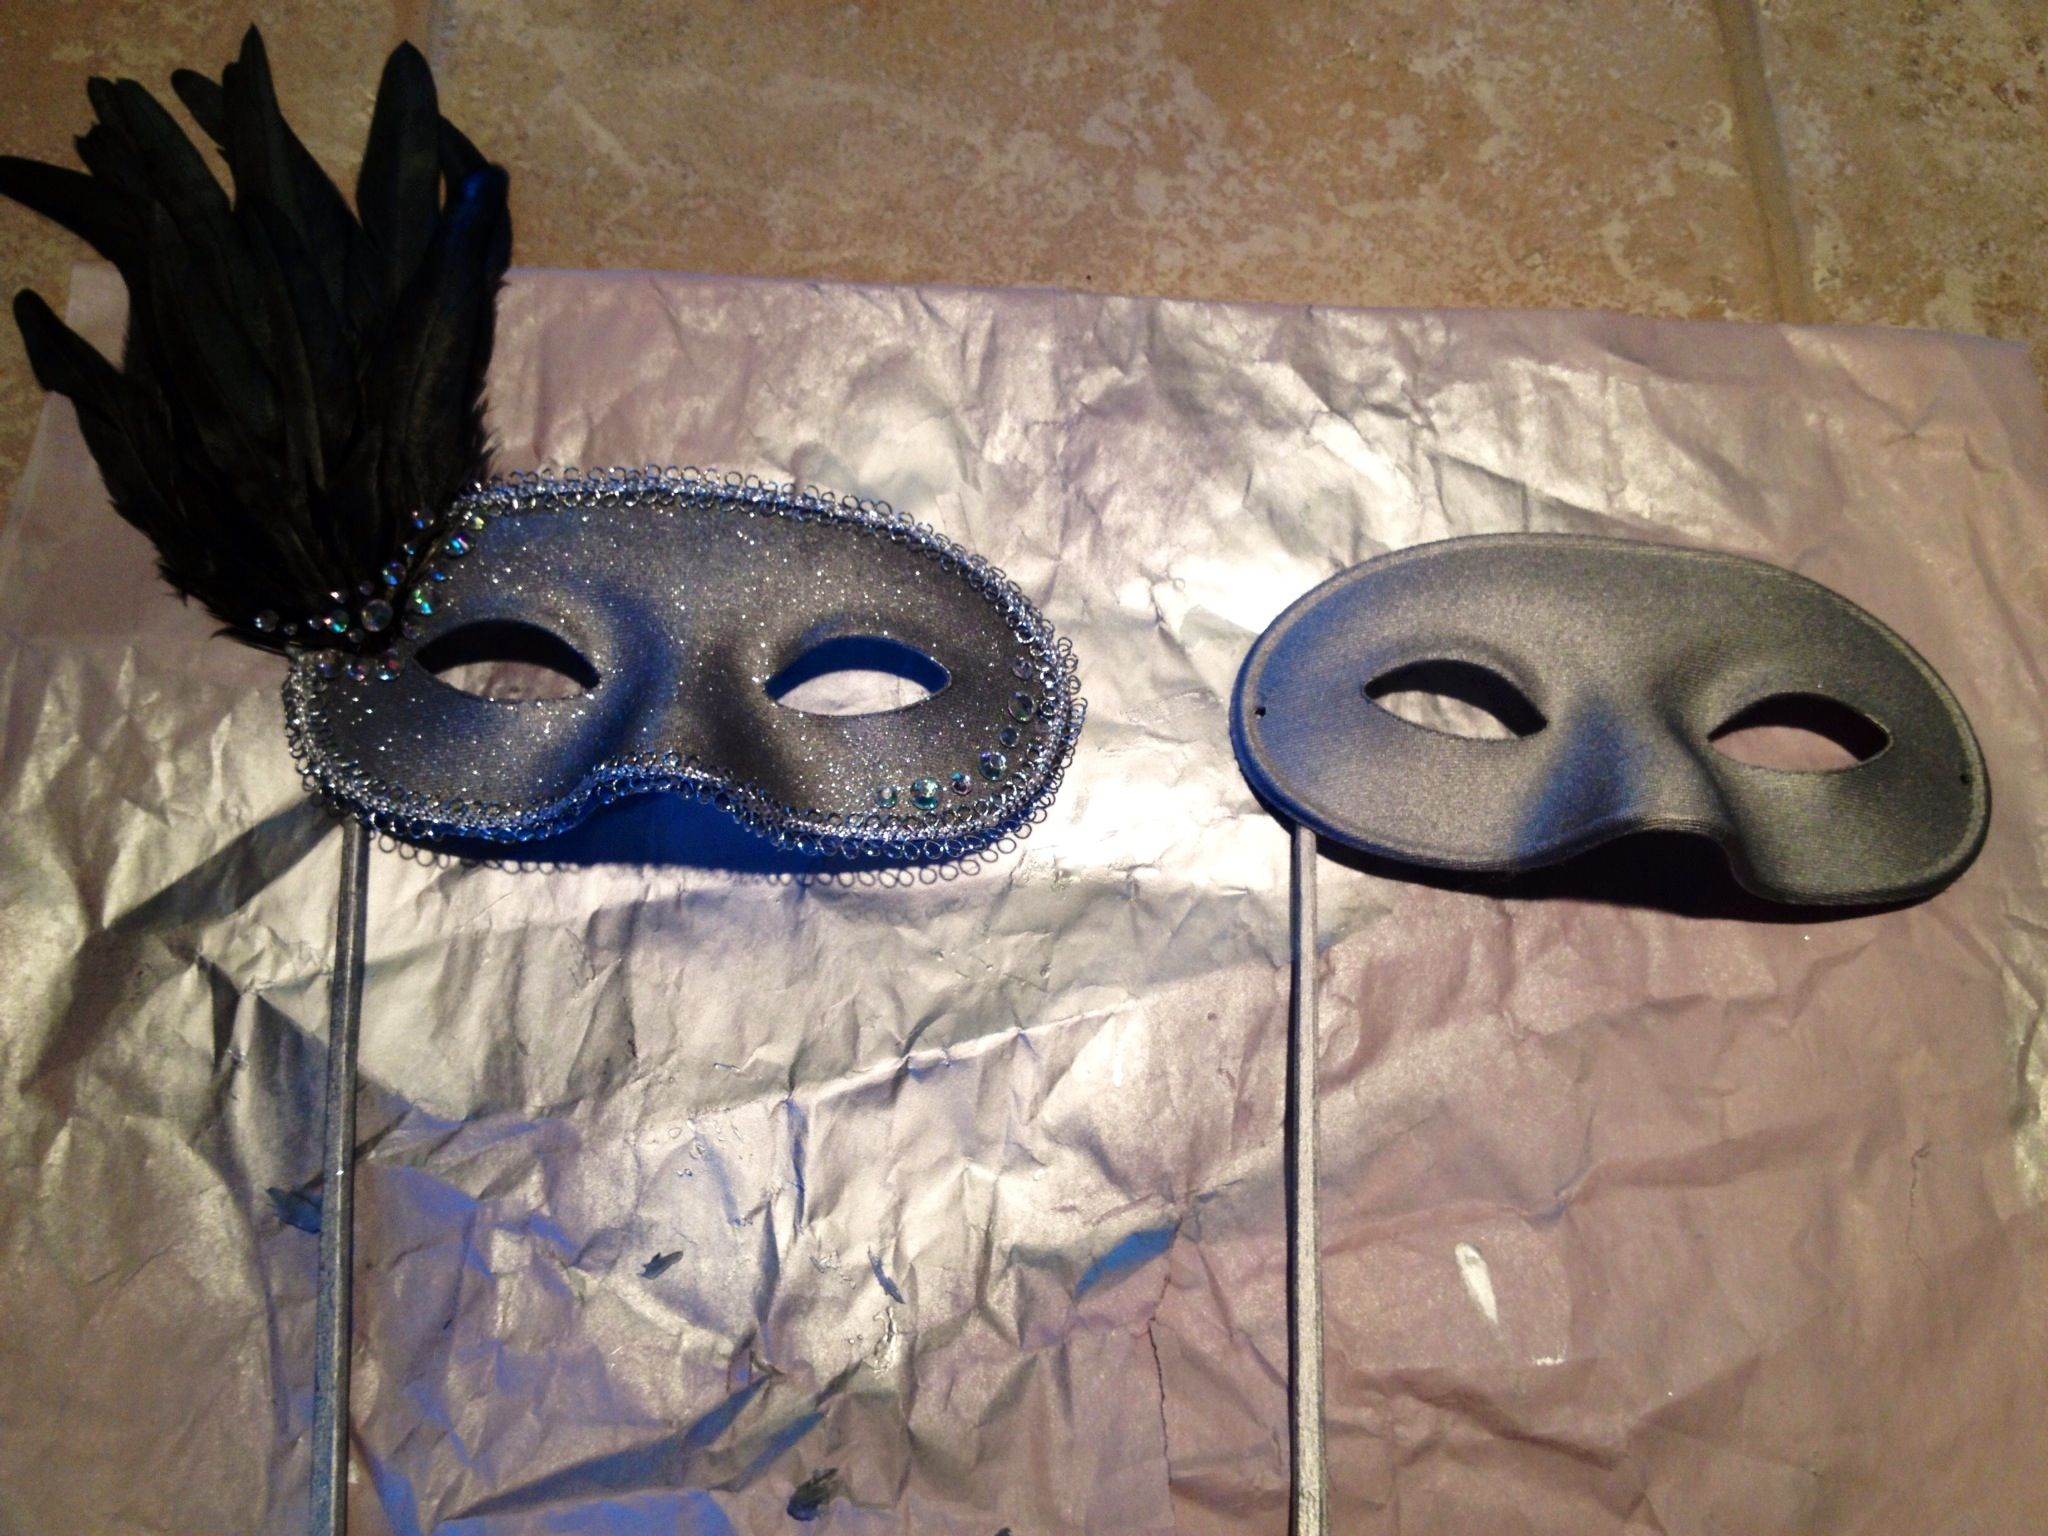 Plain Masks To Decorate Diy Masquerade Maskplain White Mask Spray Paint Silver Silver